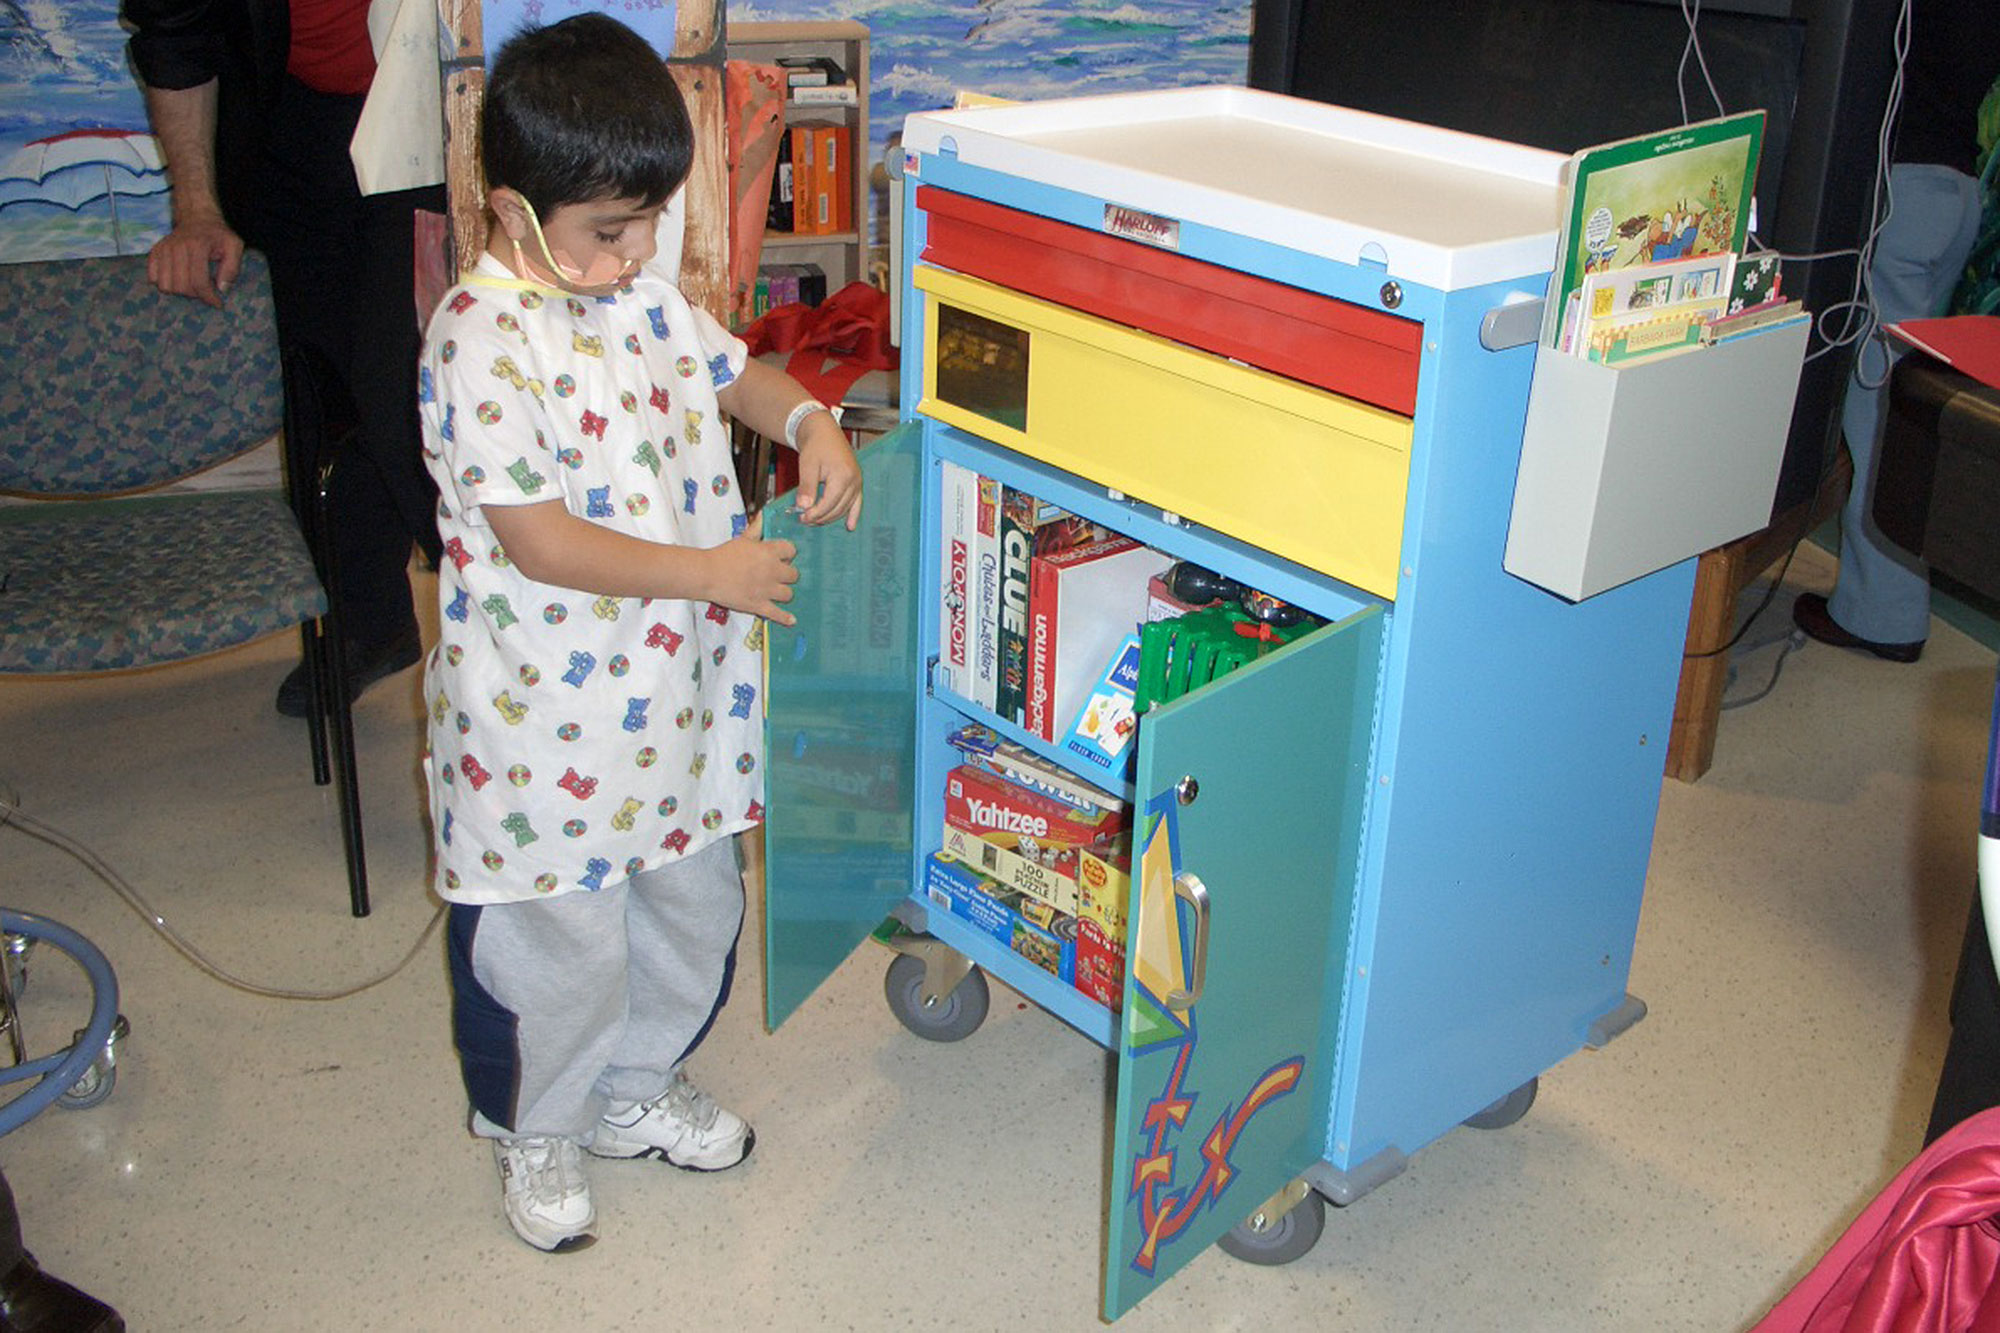 Photos of children using play stations and getting toys are at the pediatric floor of Miller Children's and Women's Hospital in Long Beach, California.